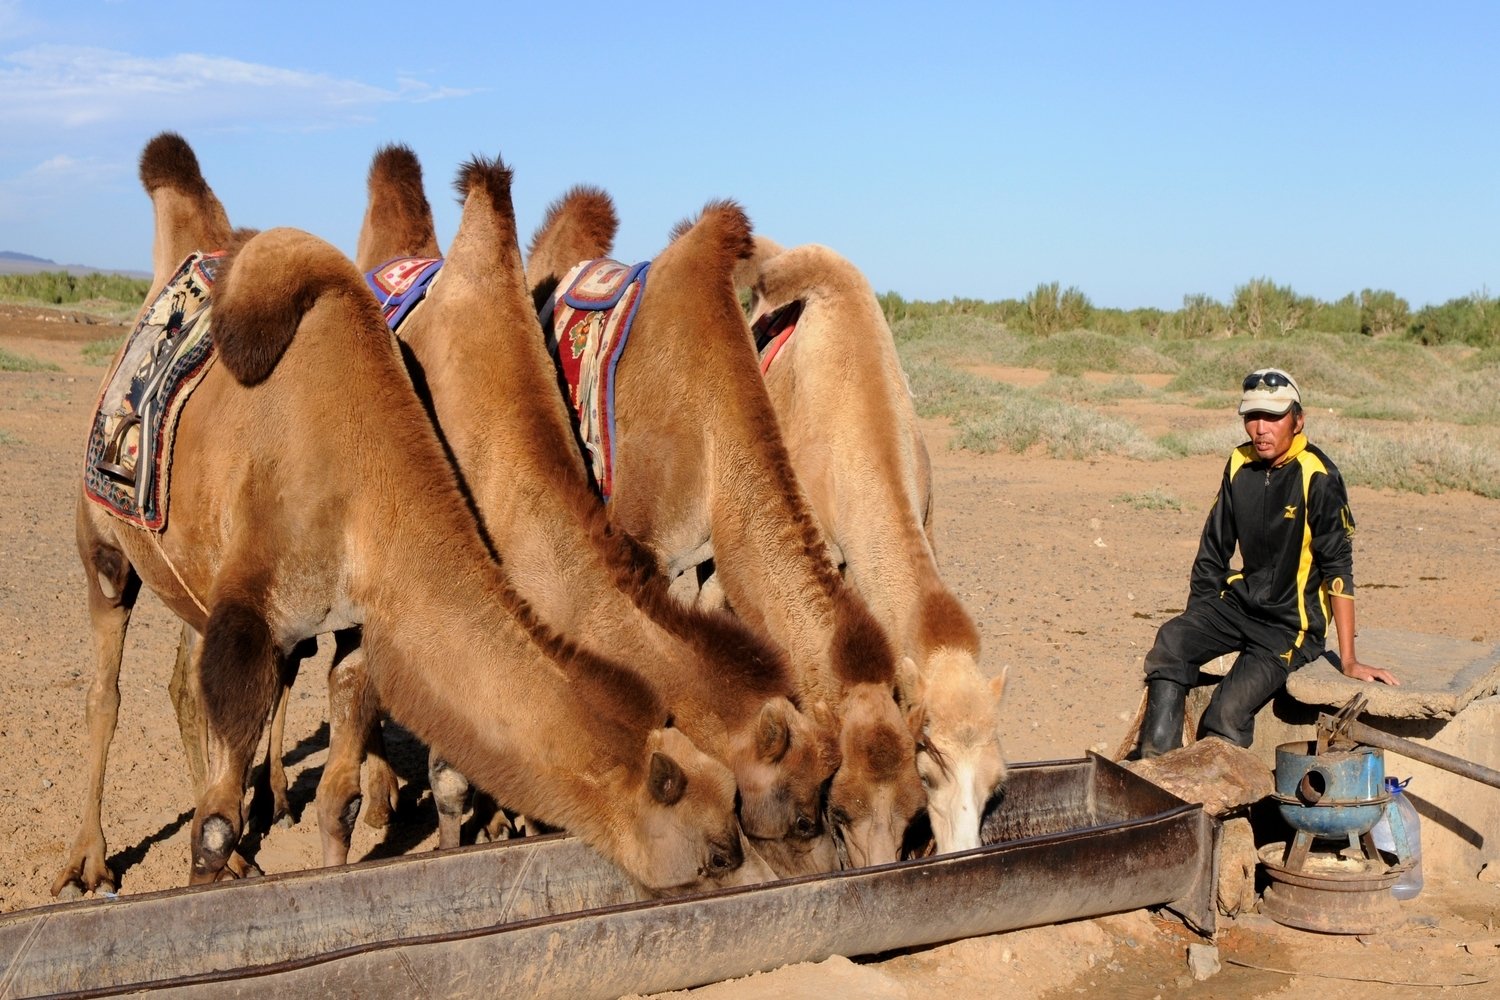 A camel breeder with his camels at Gobi desert Mongolia